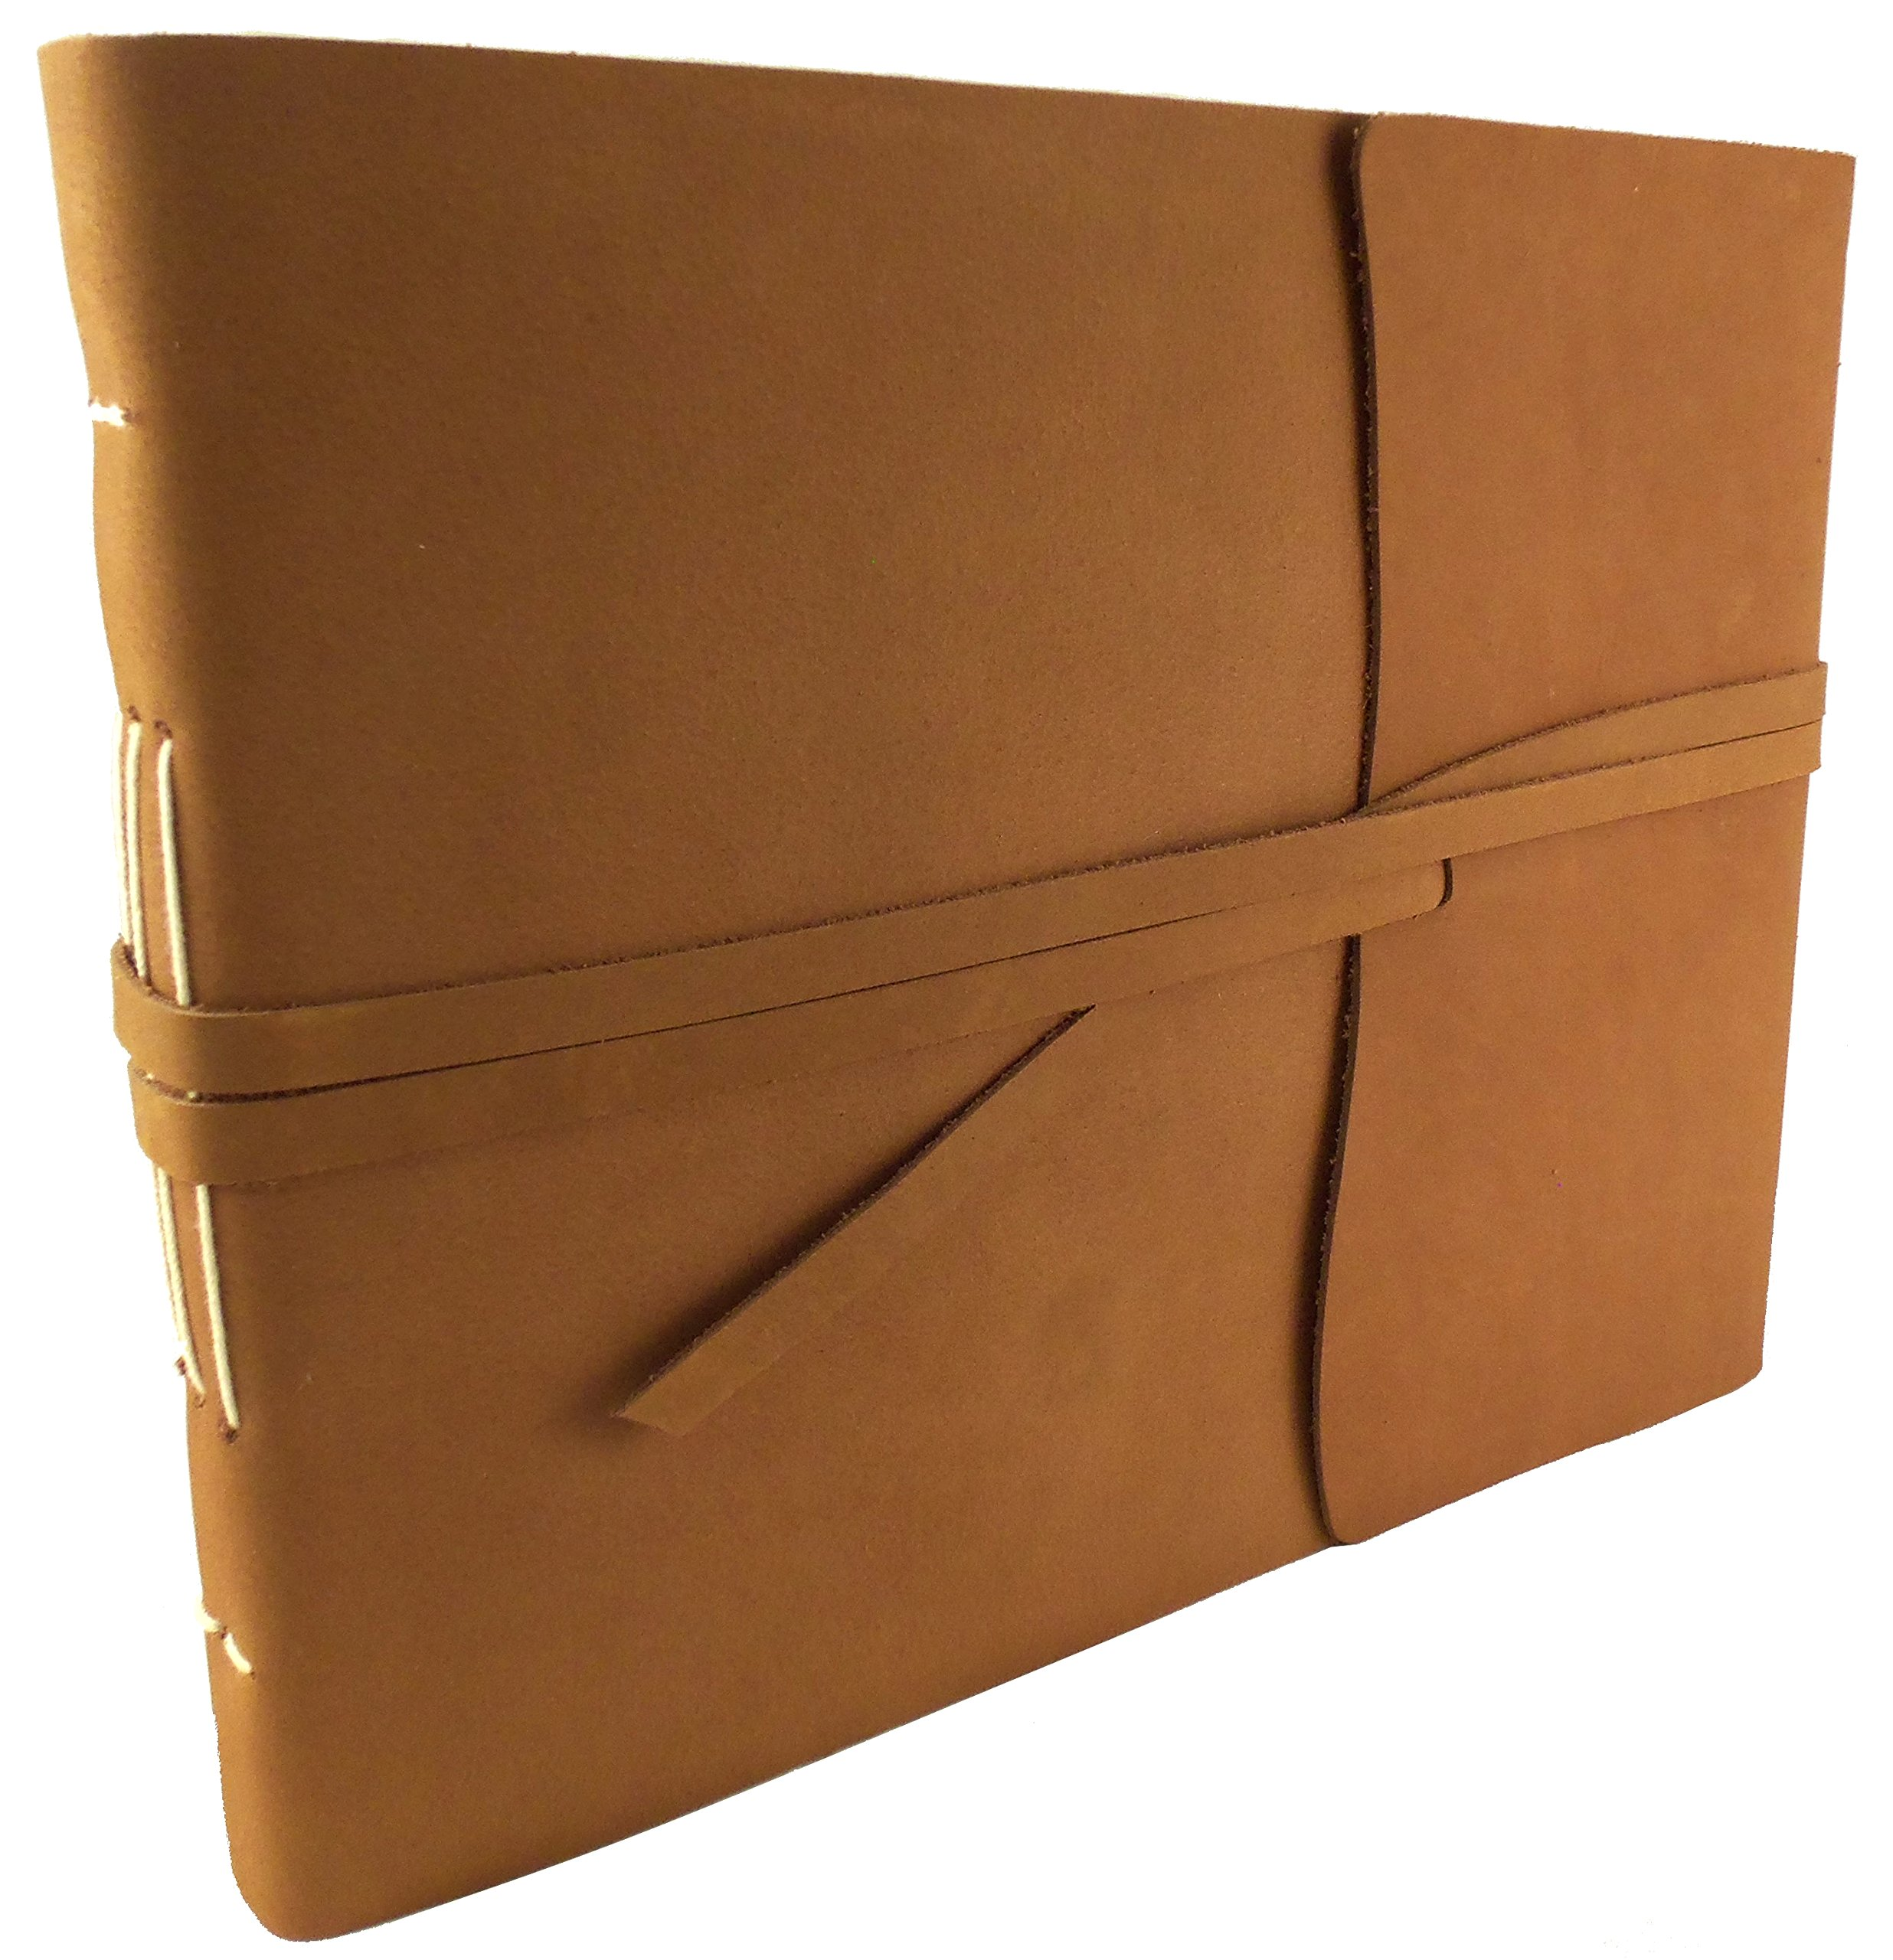 Large Rustic Genuine Leather Photo Album with Gift Box - Scrapbook Style Pages - Holds 400 4x6'' or 200 5x7'' Photos